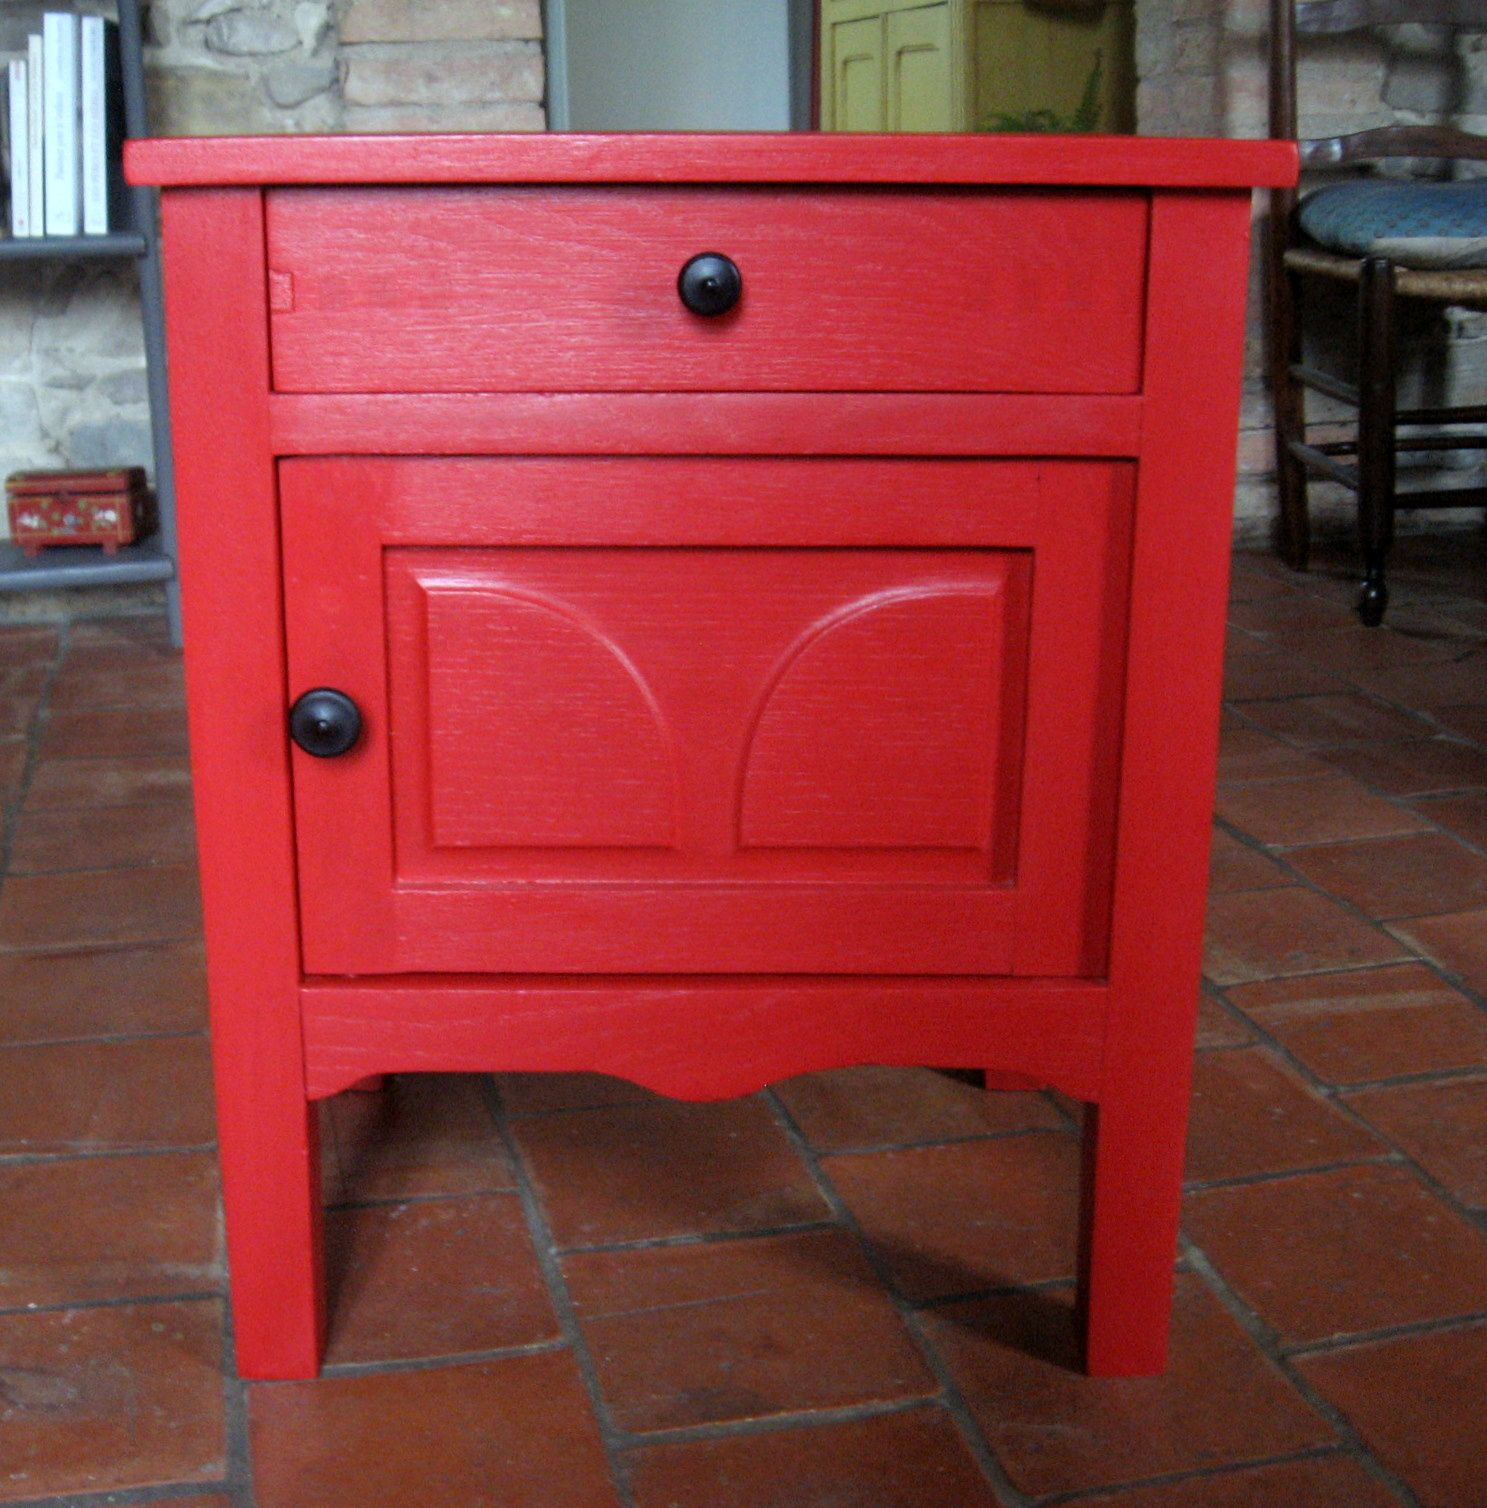 Table chevet rouge - Chevet kartell componibili ...